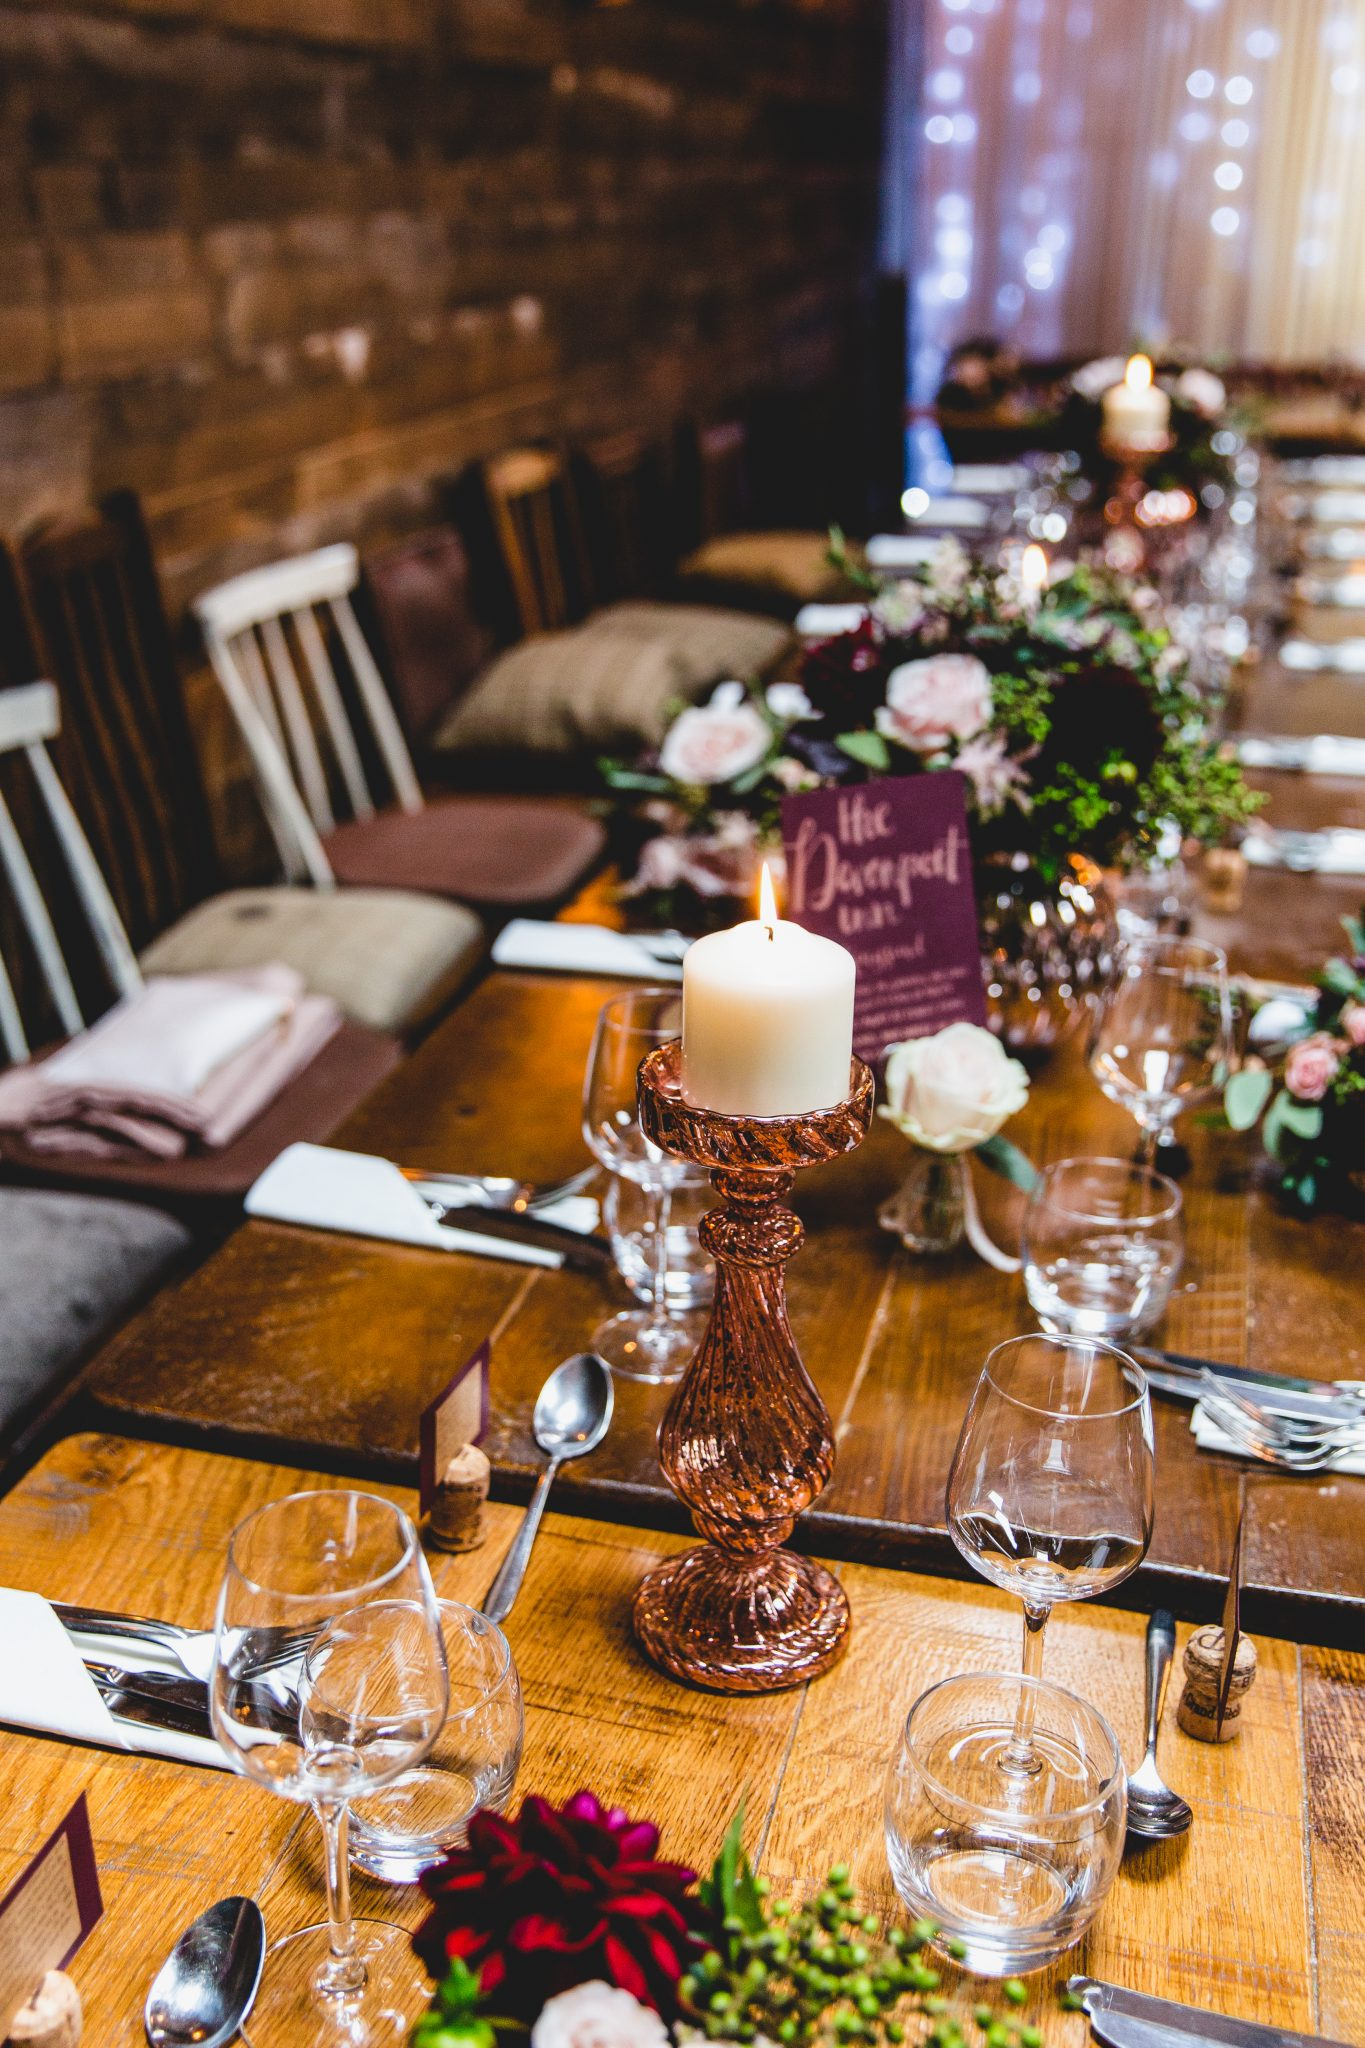 wedding table at the frog and wicket pub